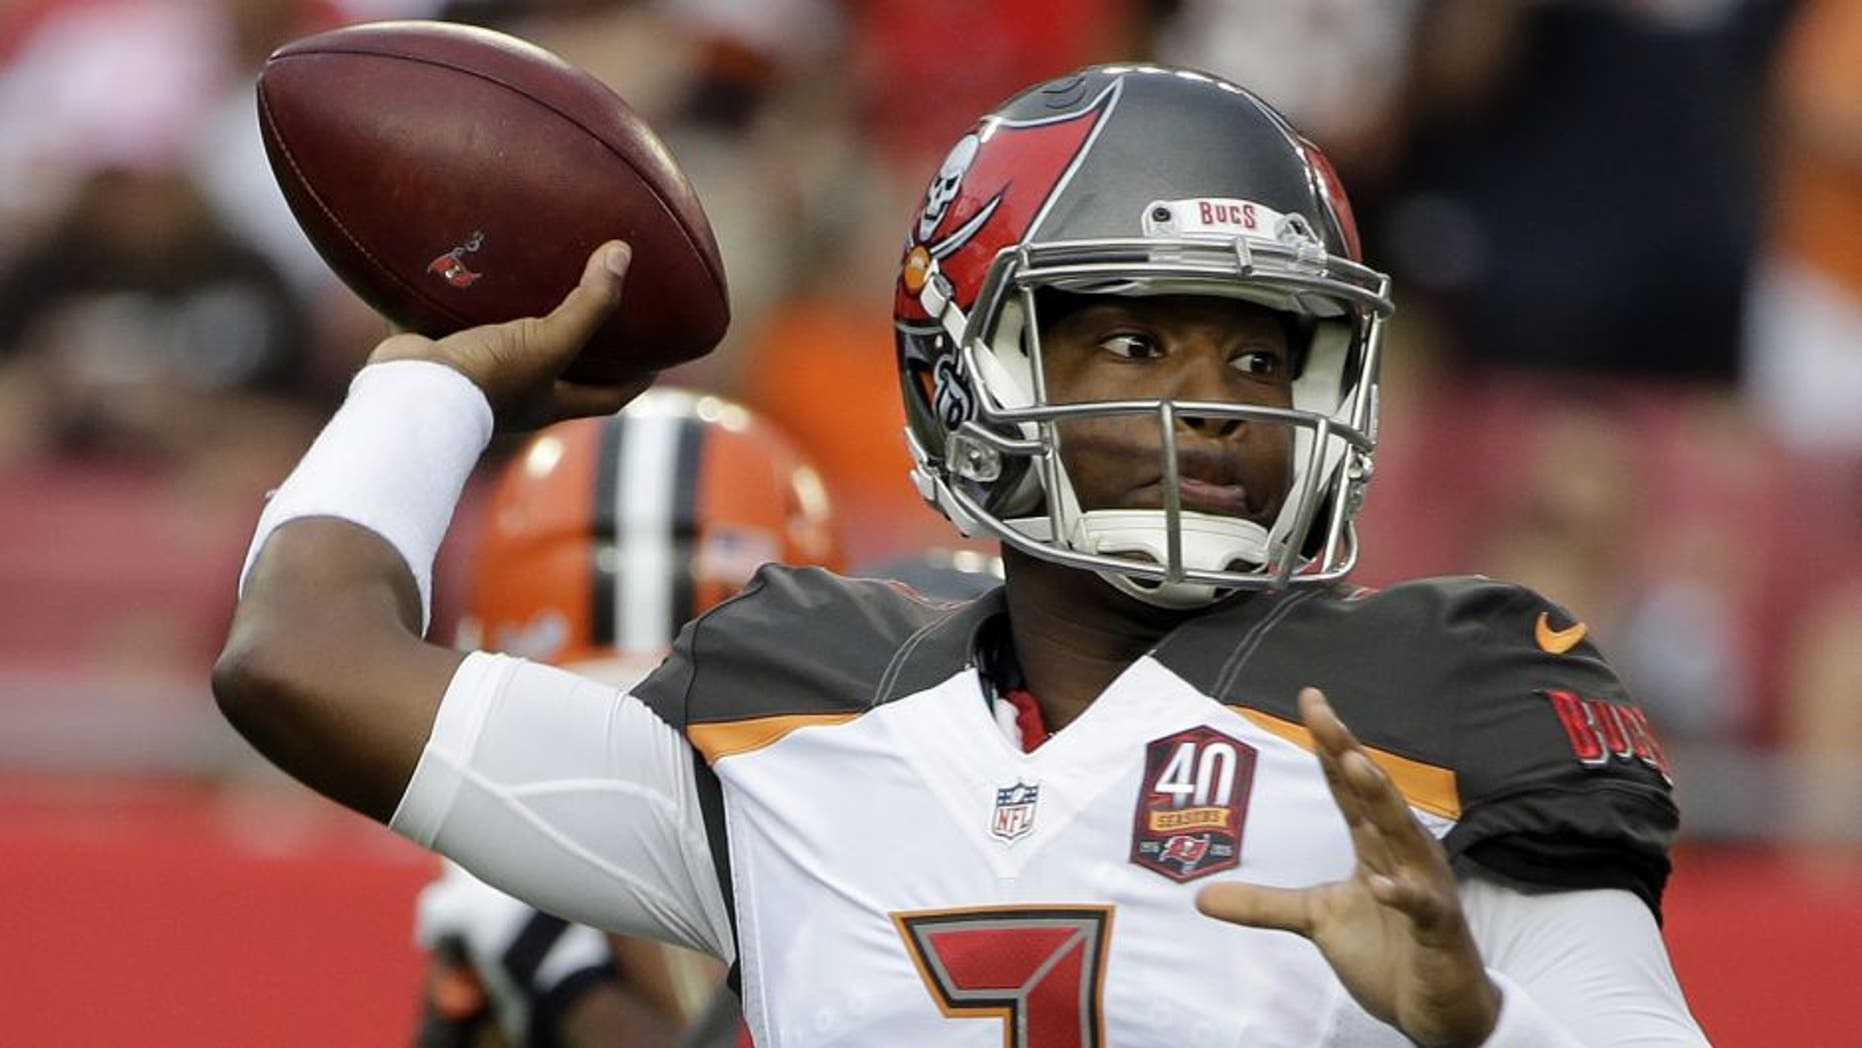 Tampa Bay Buccaneers quarterback Jameis Winston (3) throws a pass against the Cleveland Browns during the first quarter of an NFL preseason football game Saturday, Aug. 29, 2015, in Tampa, Fla. (AP Photo/Chris O'Meara)